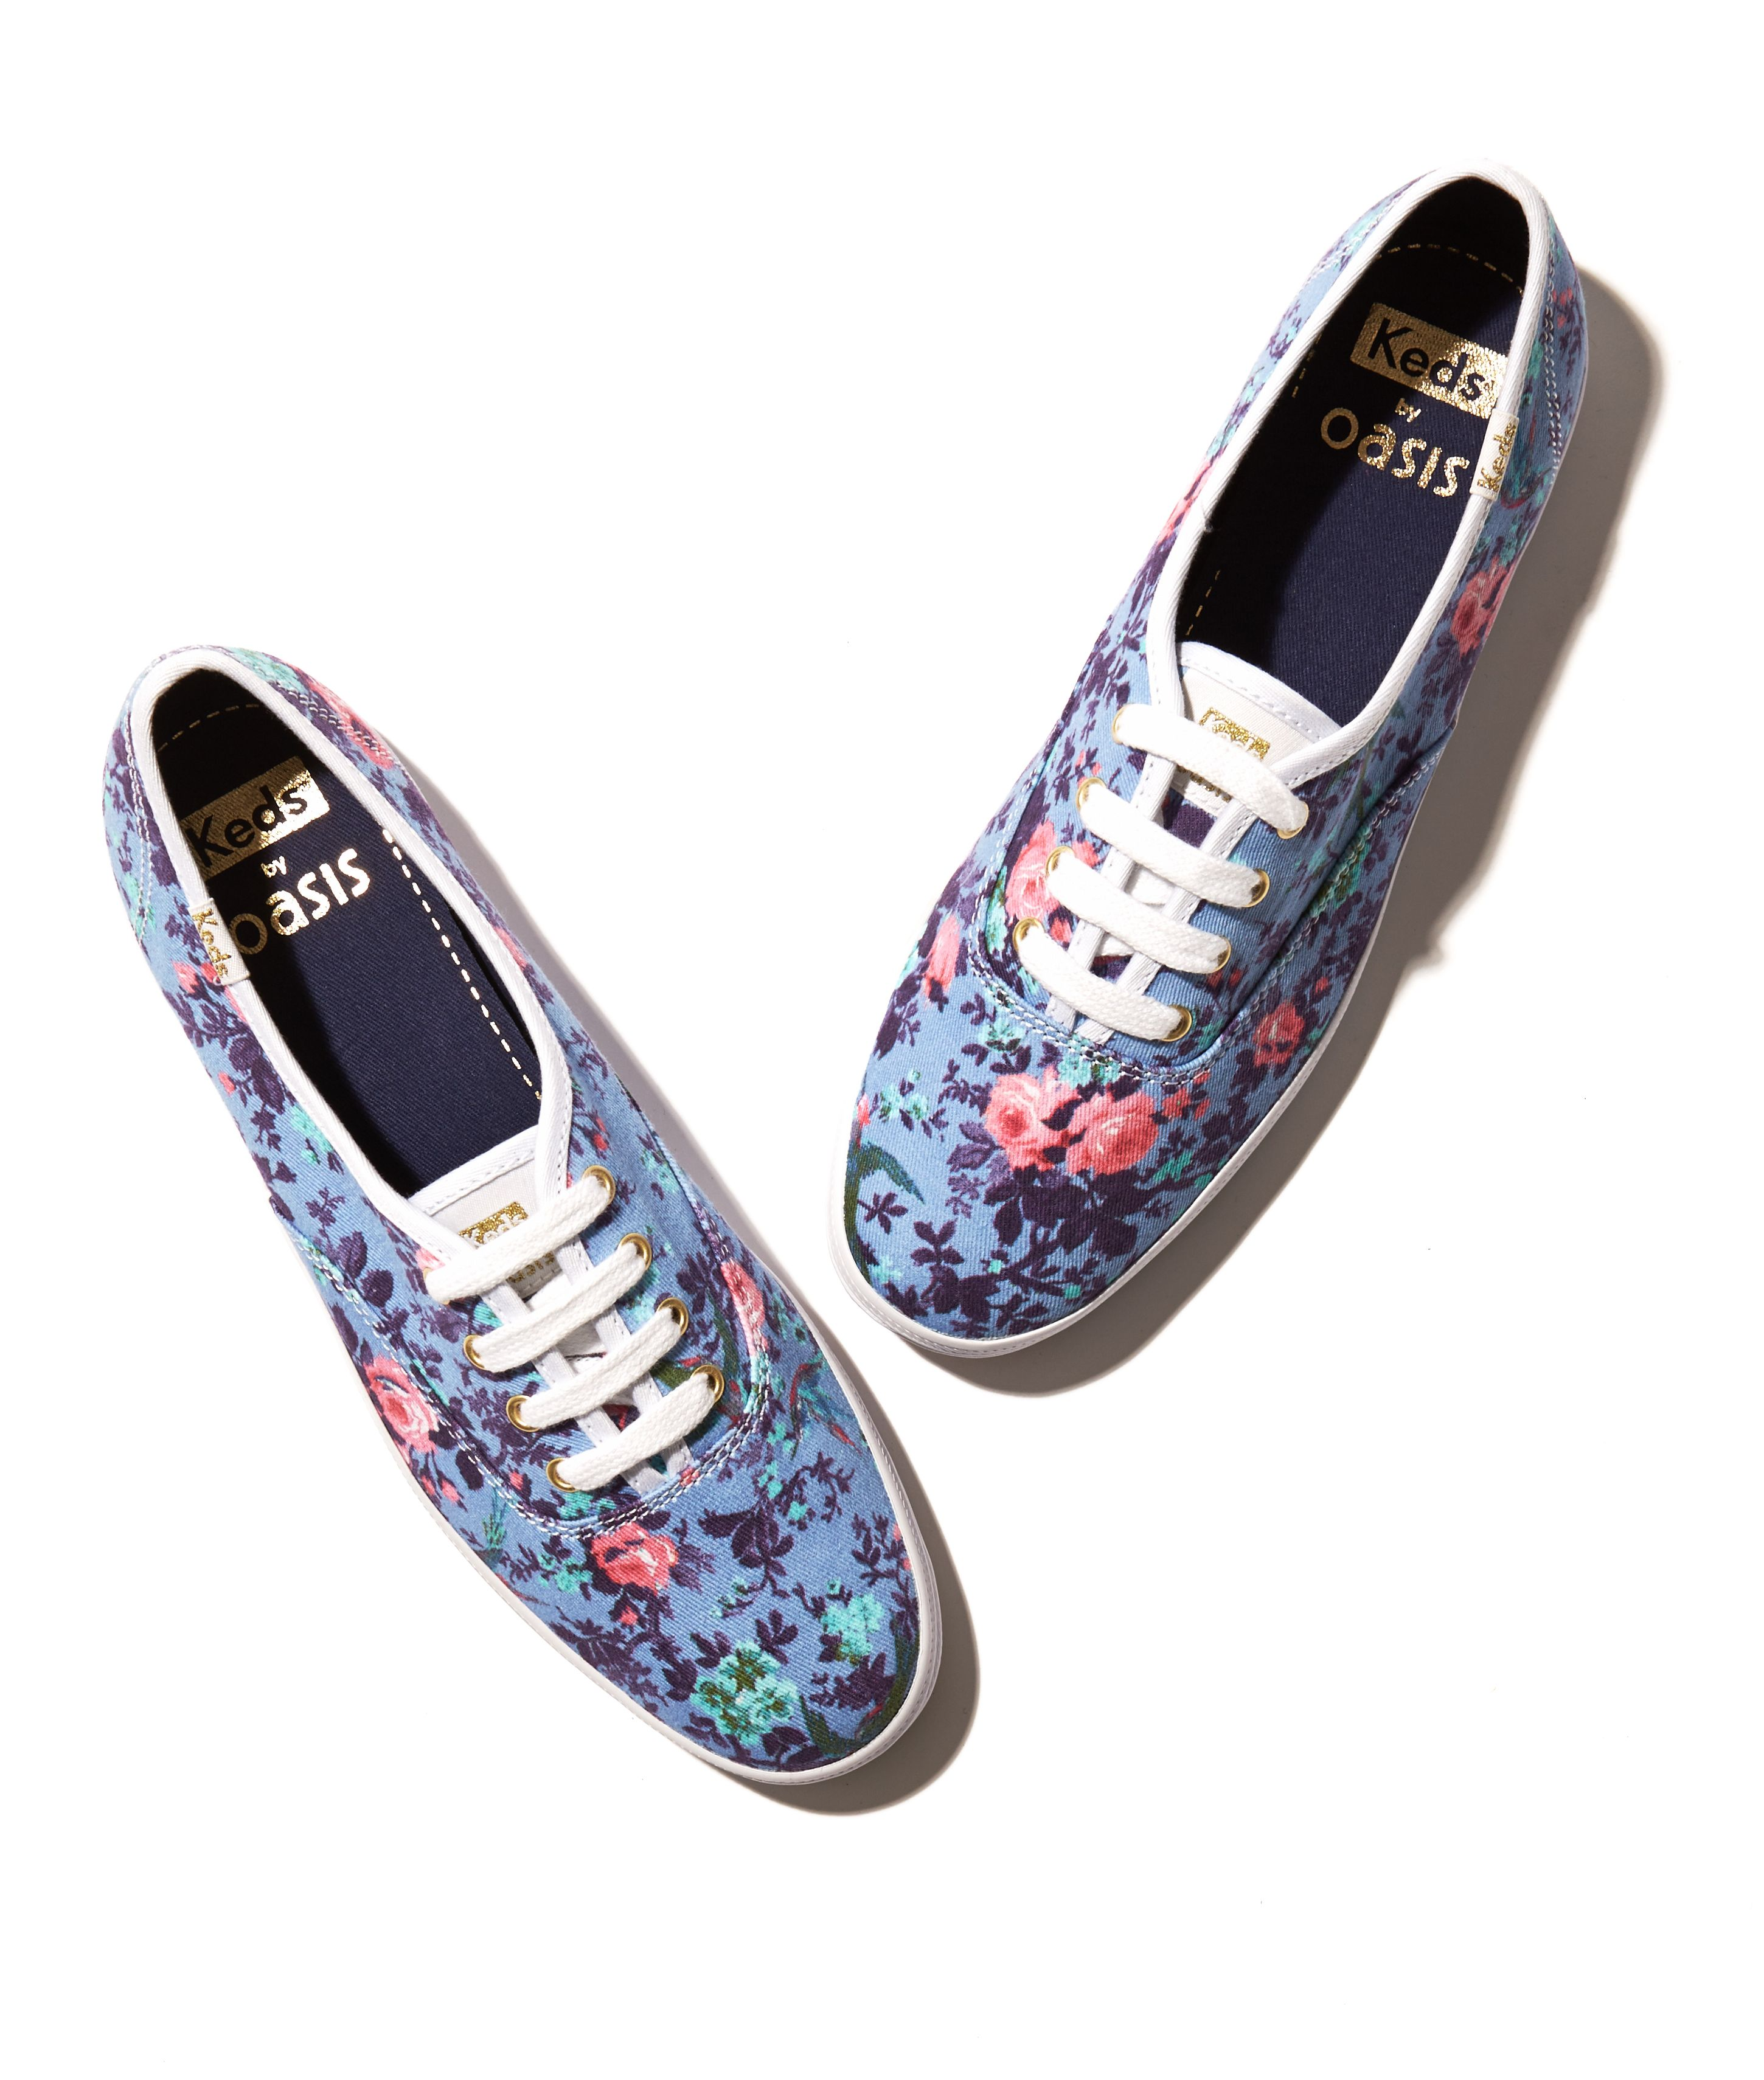 The English Rose #PerfectlyPaired Shop now at: http://www.oasis-stores.com/keds-floral-lace-up/shoes/oasis/fcp-product/6700014200